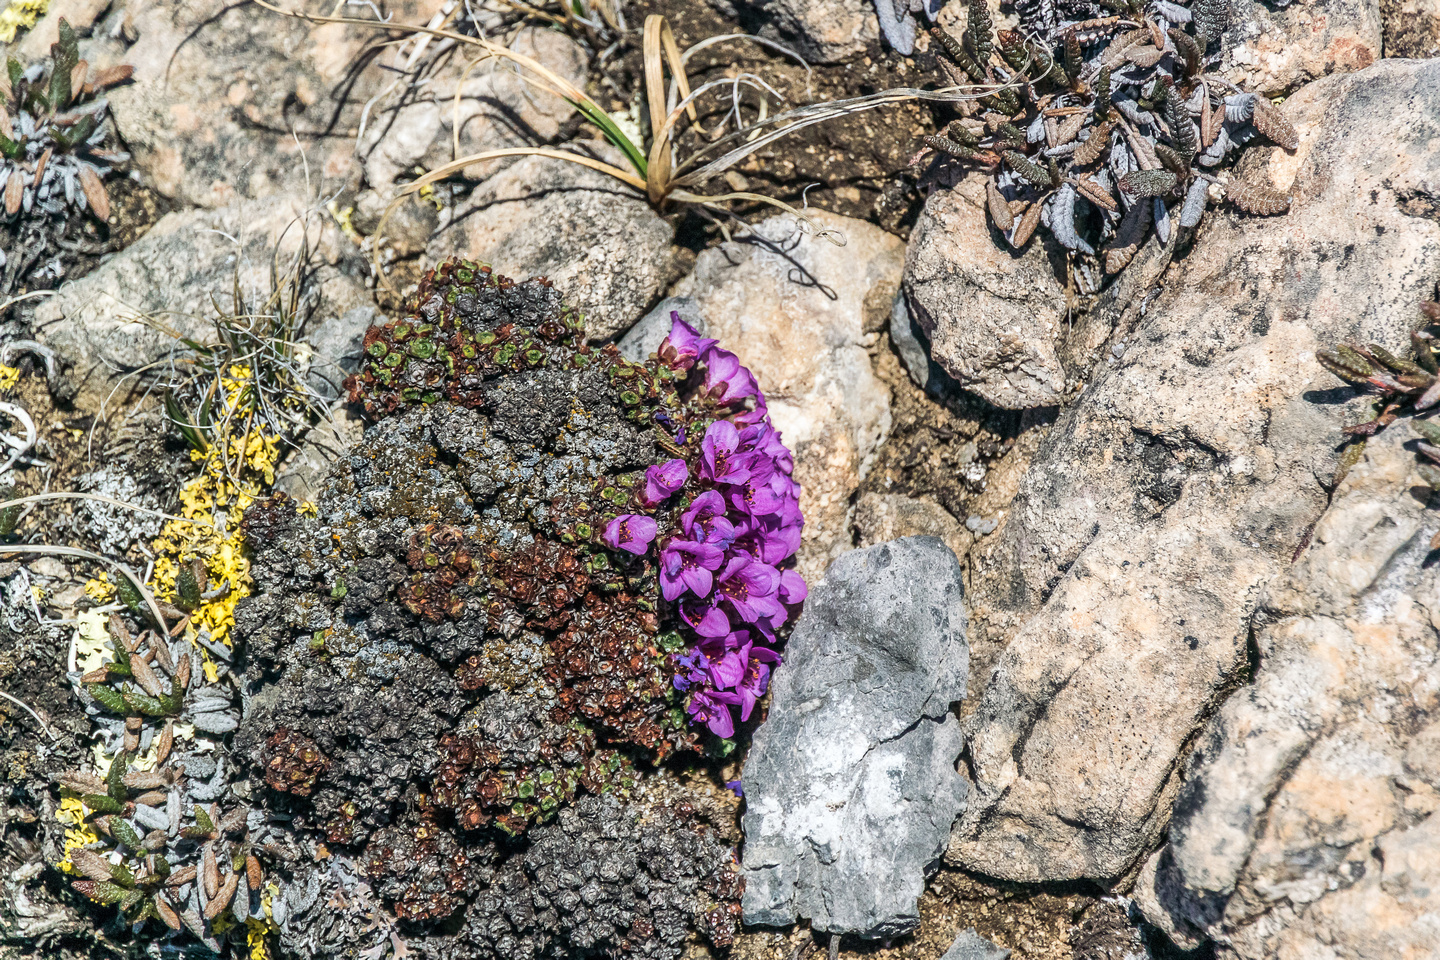 I was very surprised to see flowers in the alpine already!